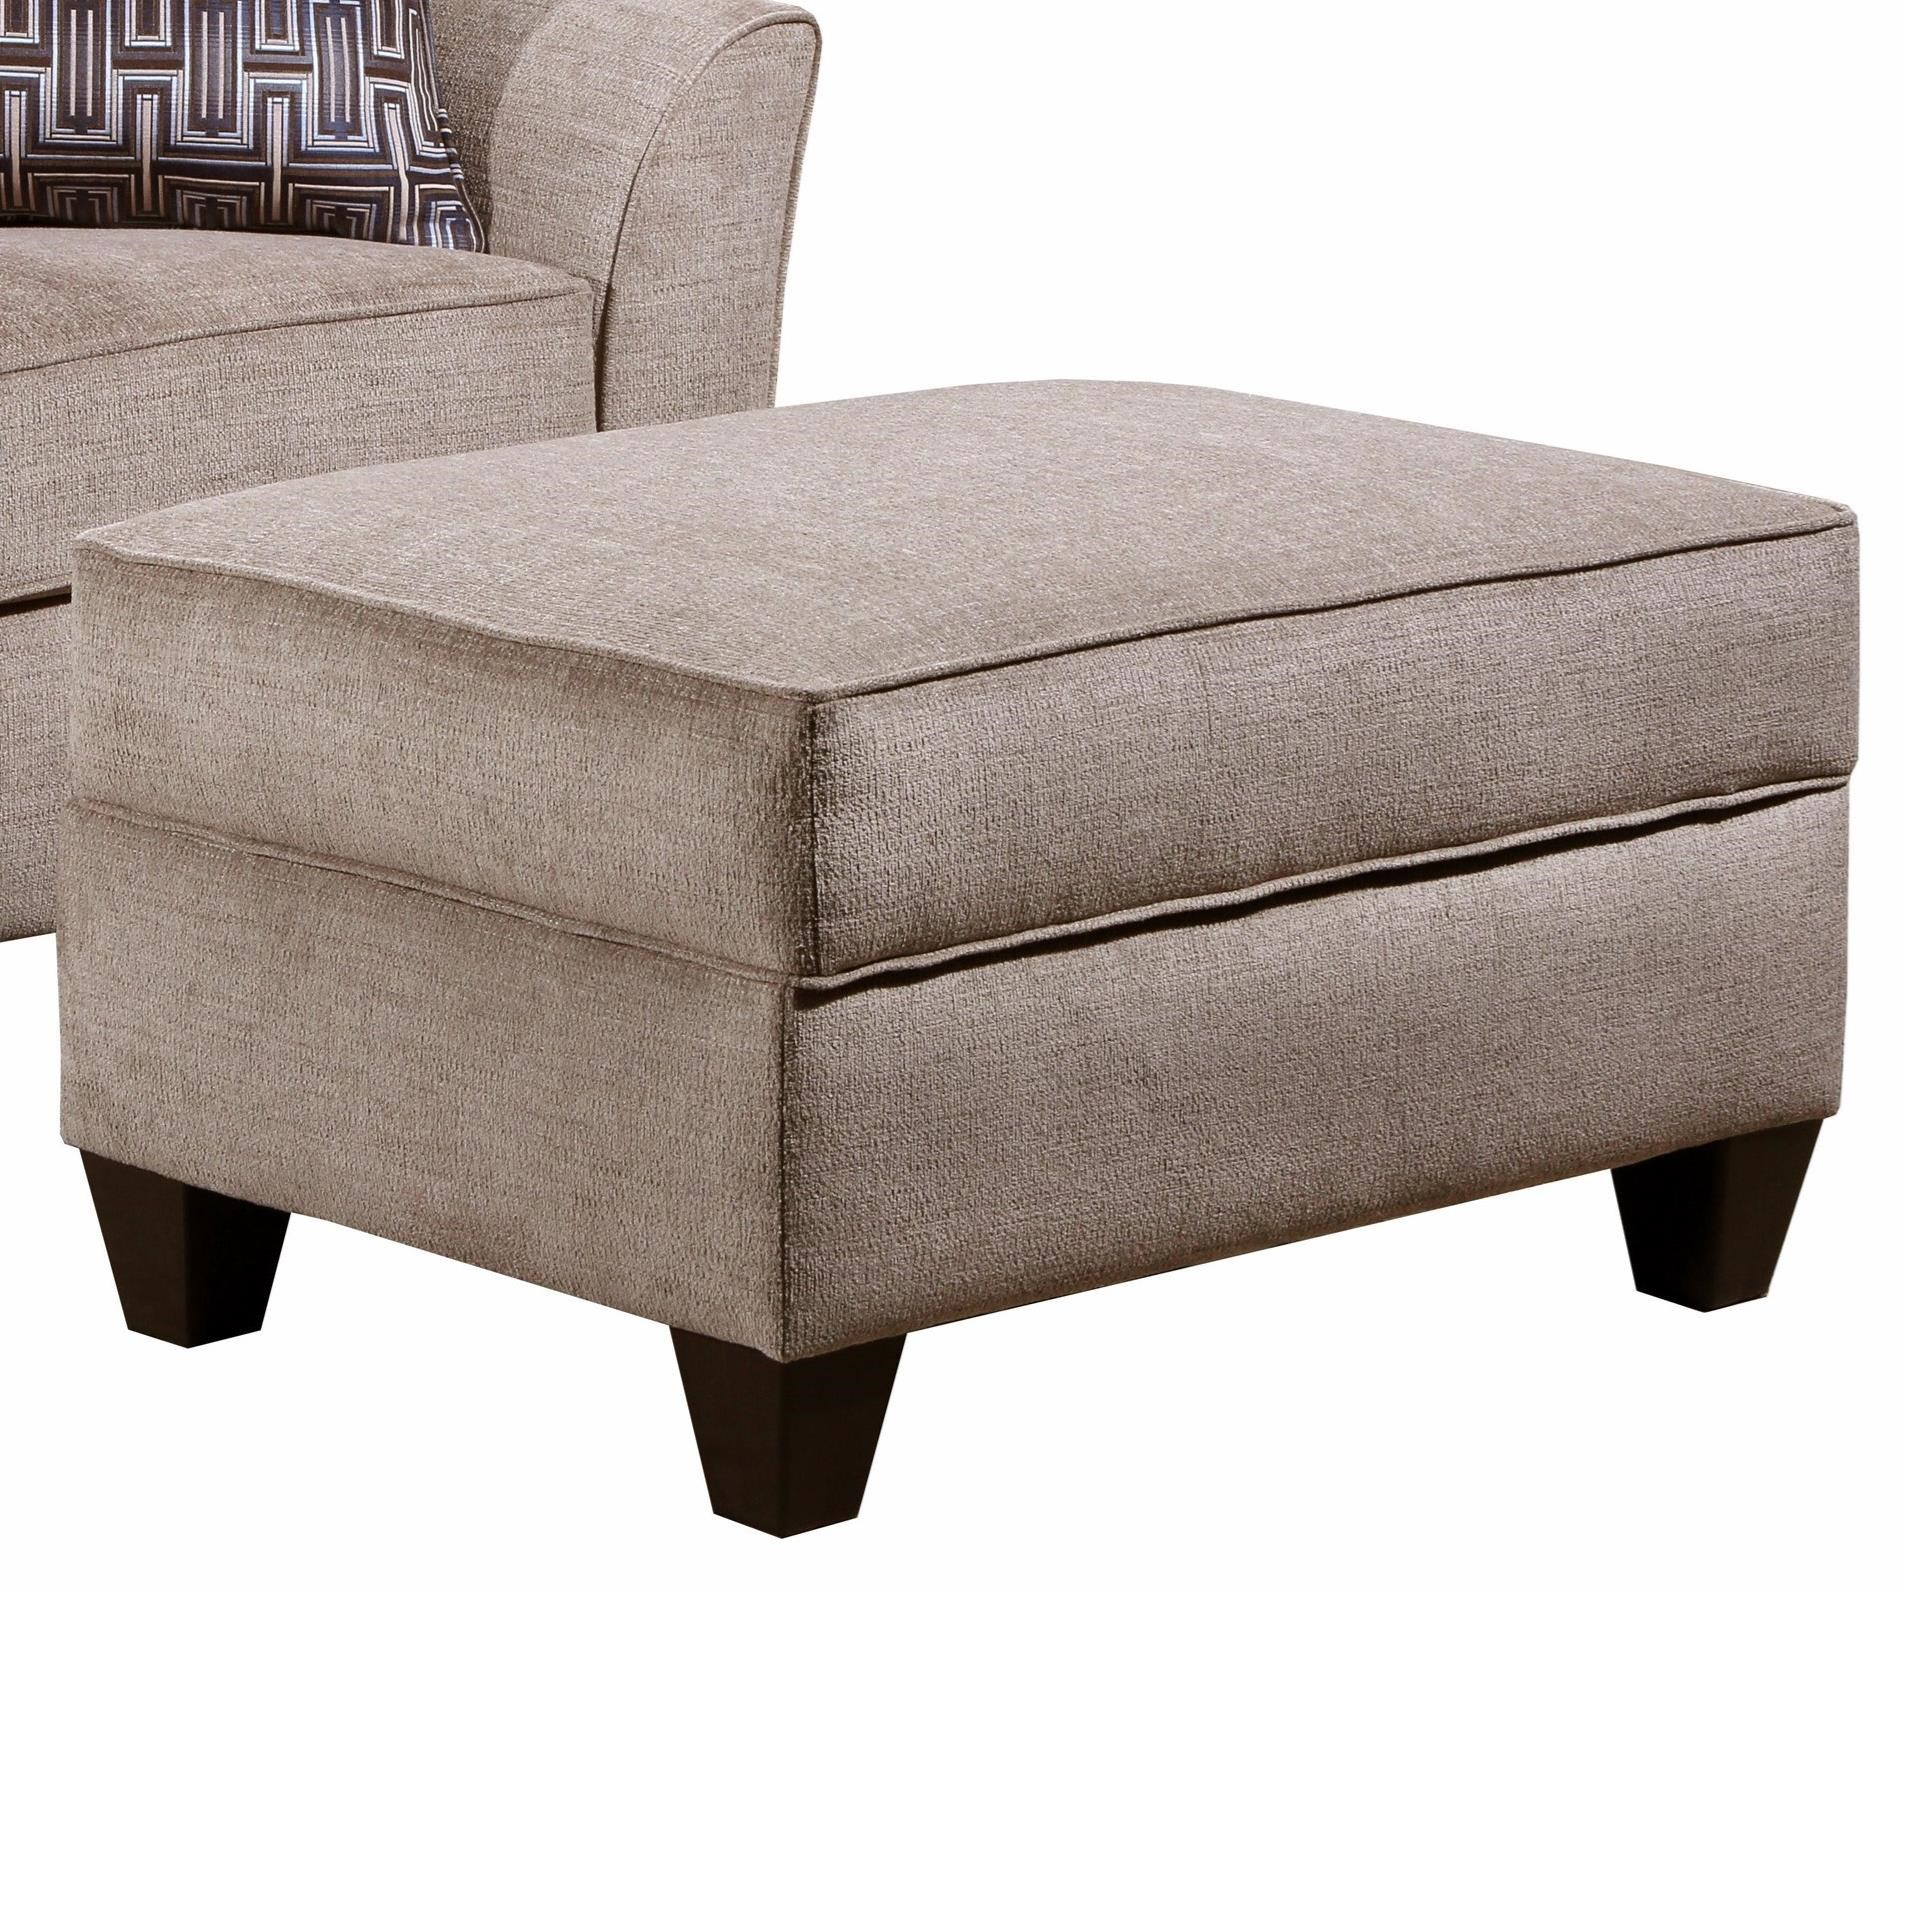 4330 Storage Ottoman by United Furniture Industries at Dream Home Interiors